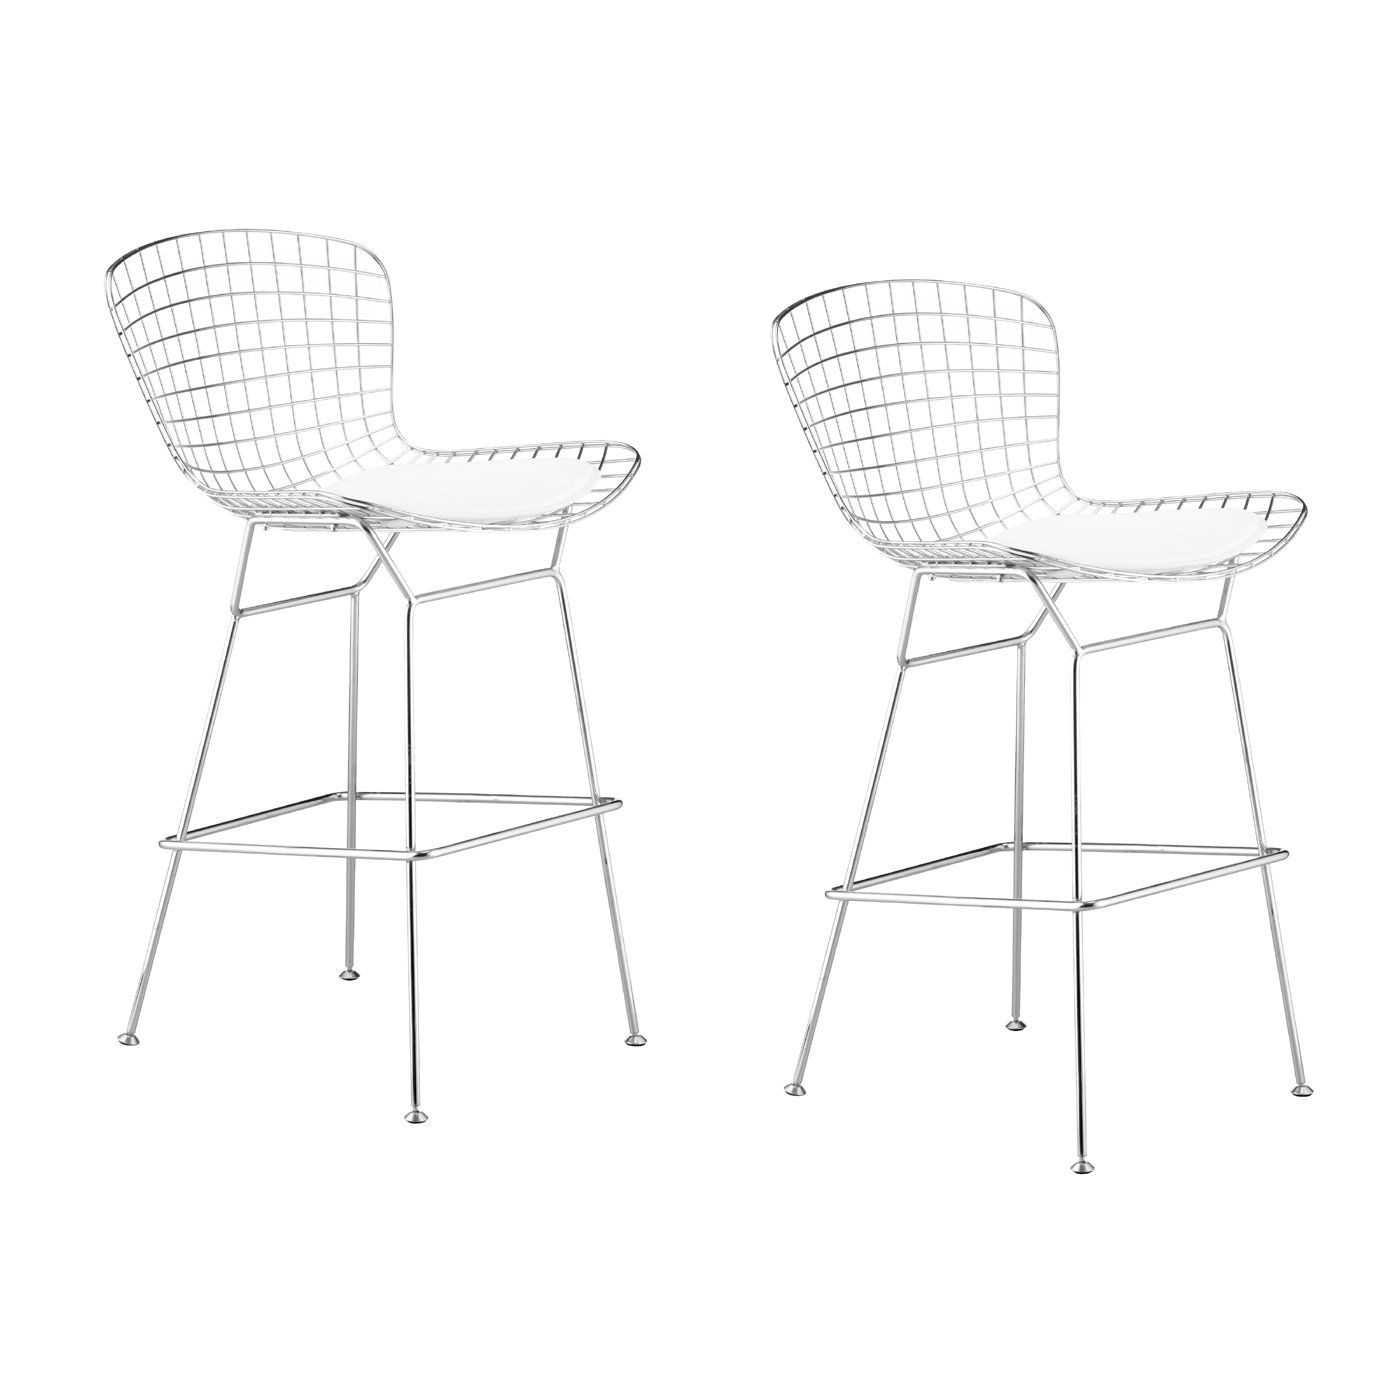 Zuo Modern Wire Bar Stool Set Of 2 At Lowe S Canada Find Our Selection Stools The Lowest Price Guaranteed With Match 10 Off